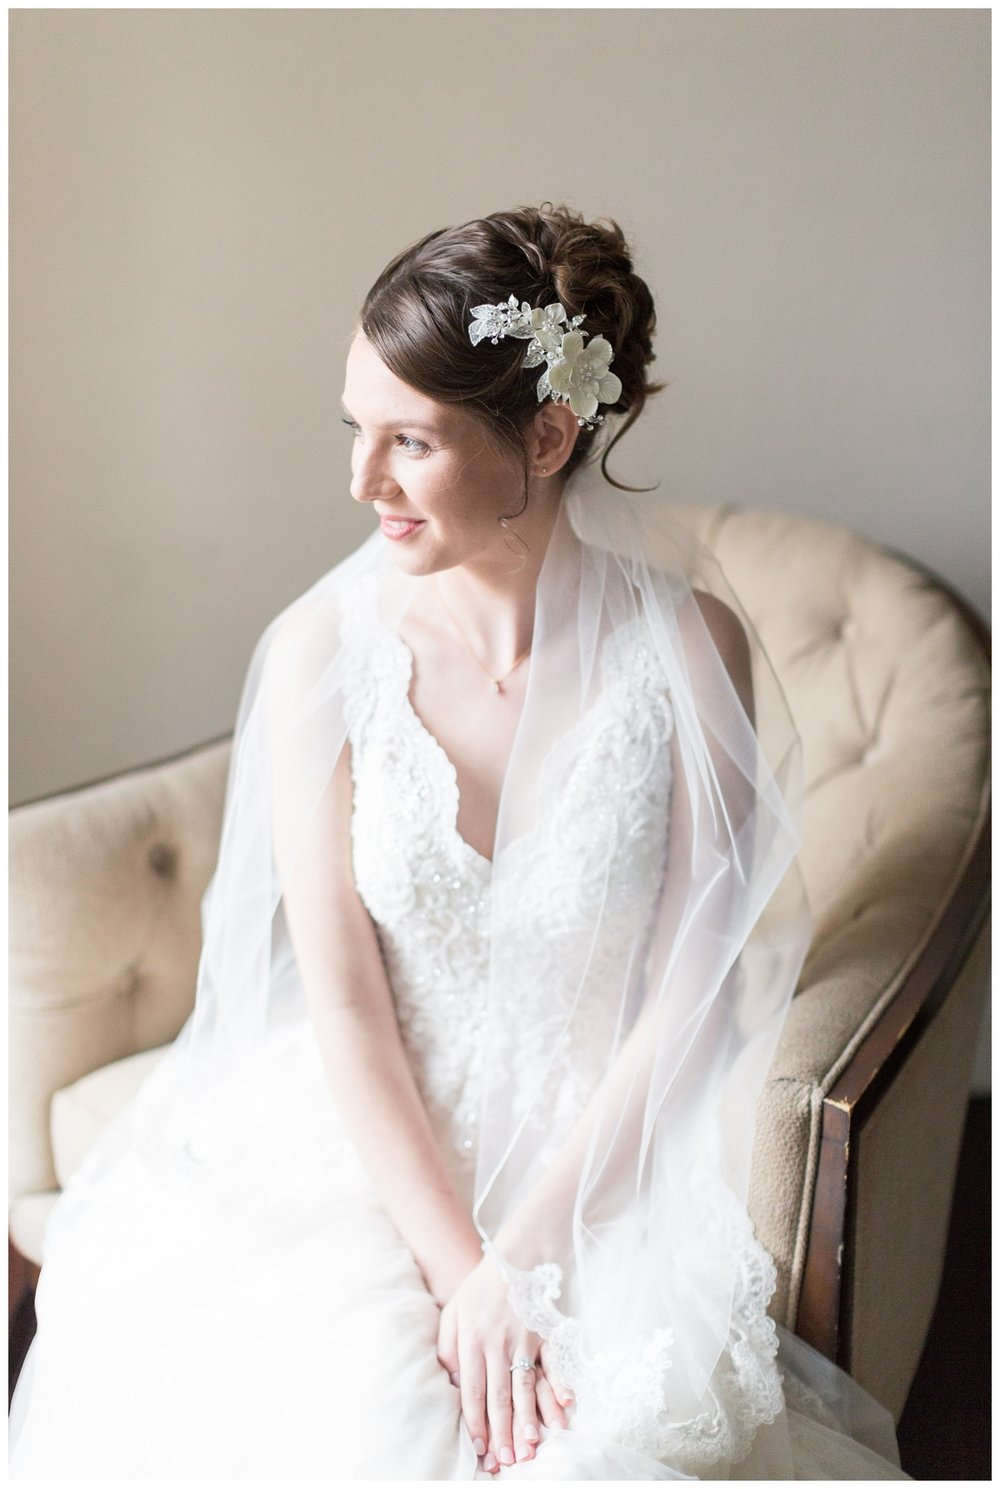 bride gets ready in the bridal suite at Vizcaya Sacramento wedding venue